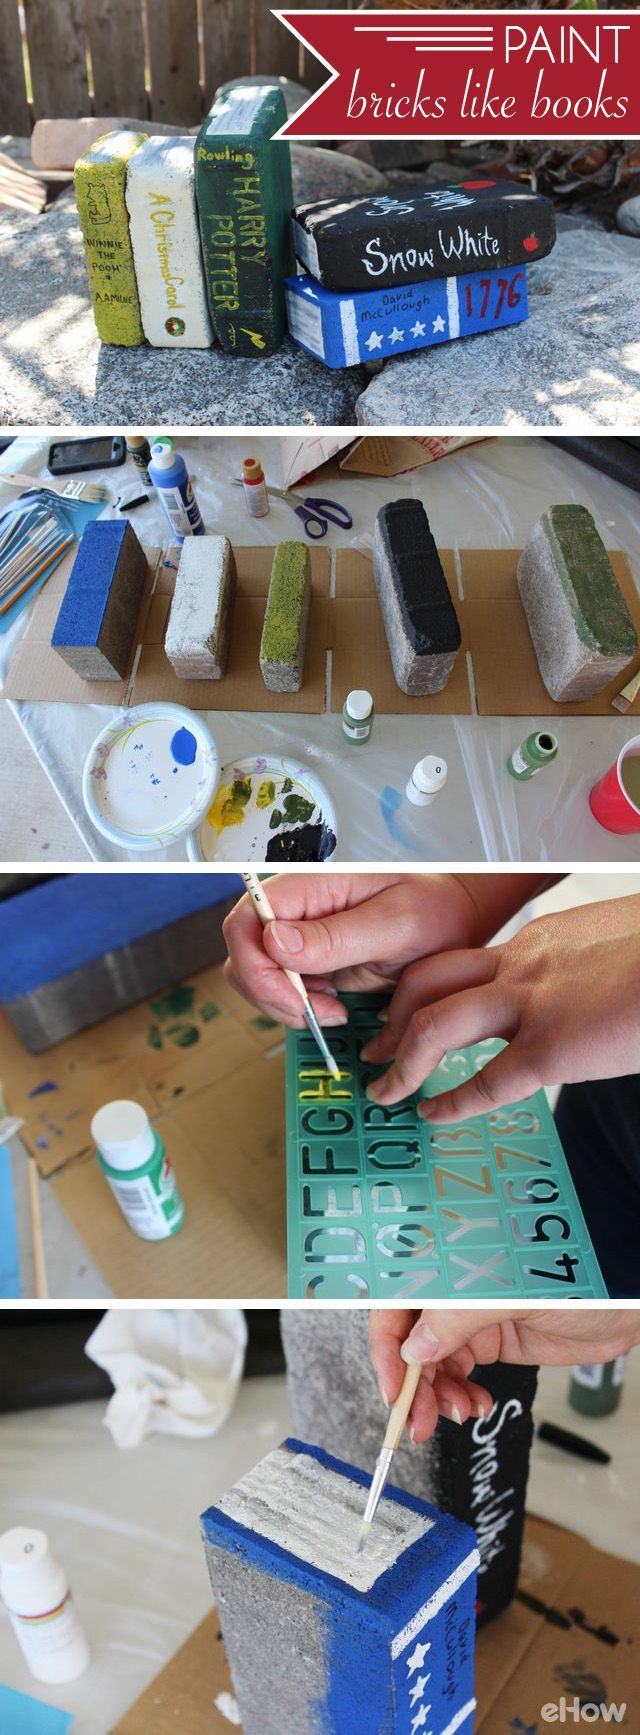 How To Paint Bricks To Look Like Books